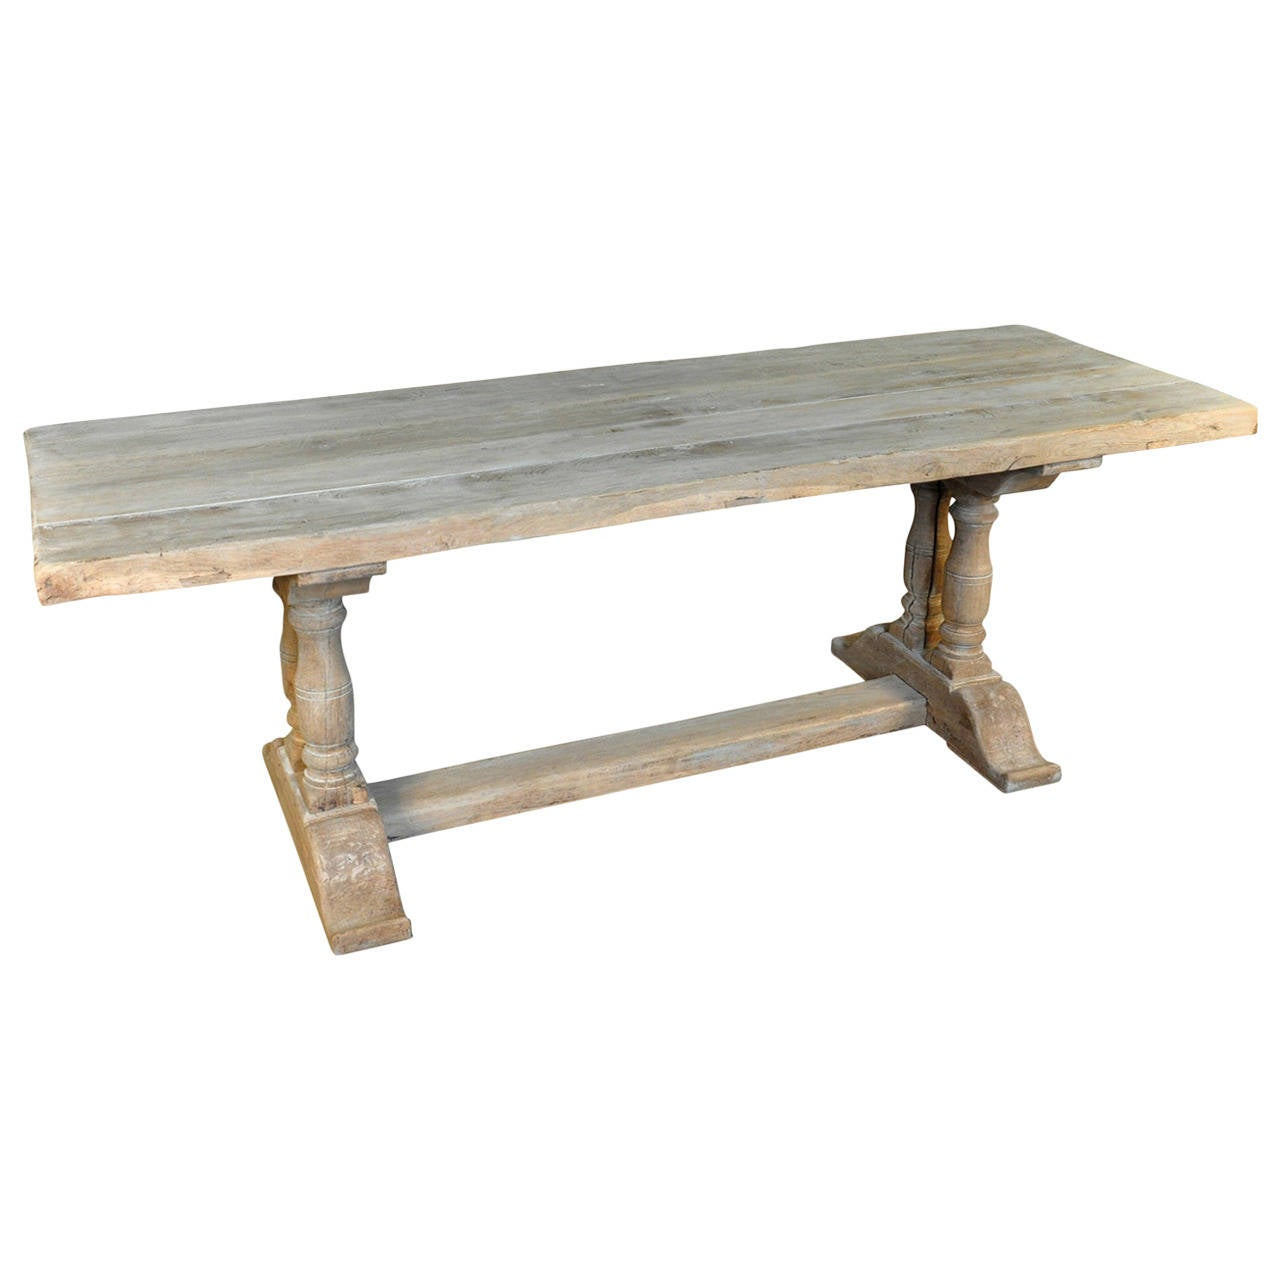 French 19th Century Farm Or Trestle Table In Bleached Oak 1